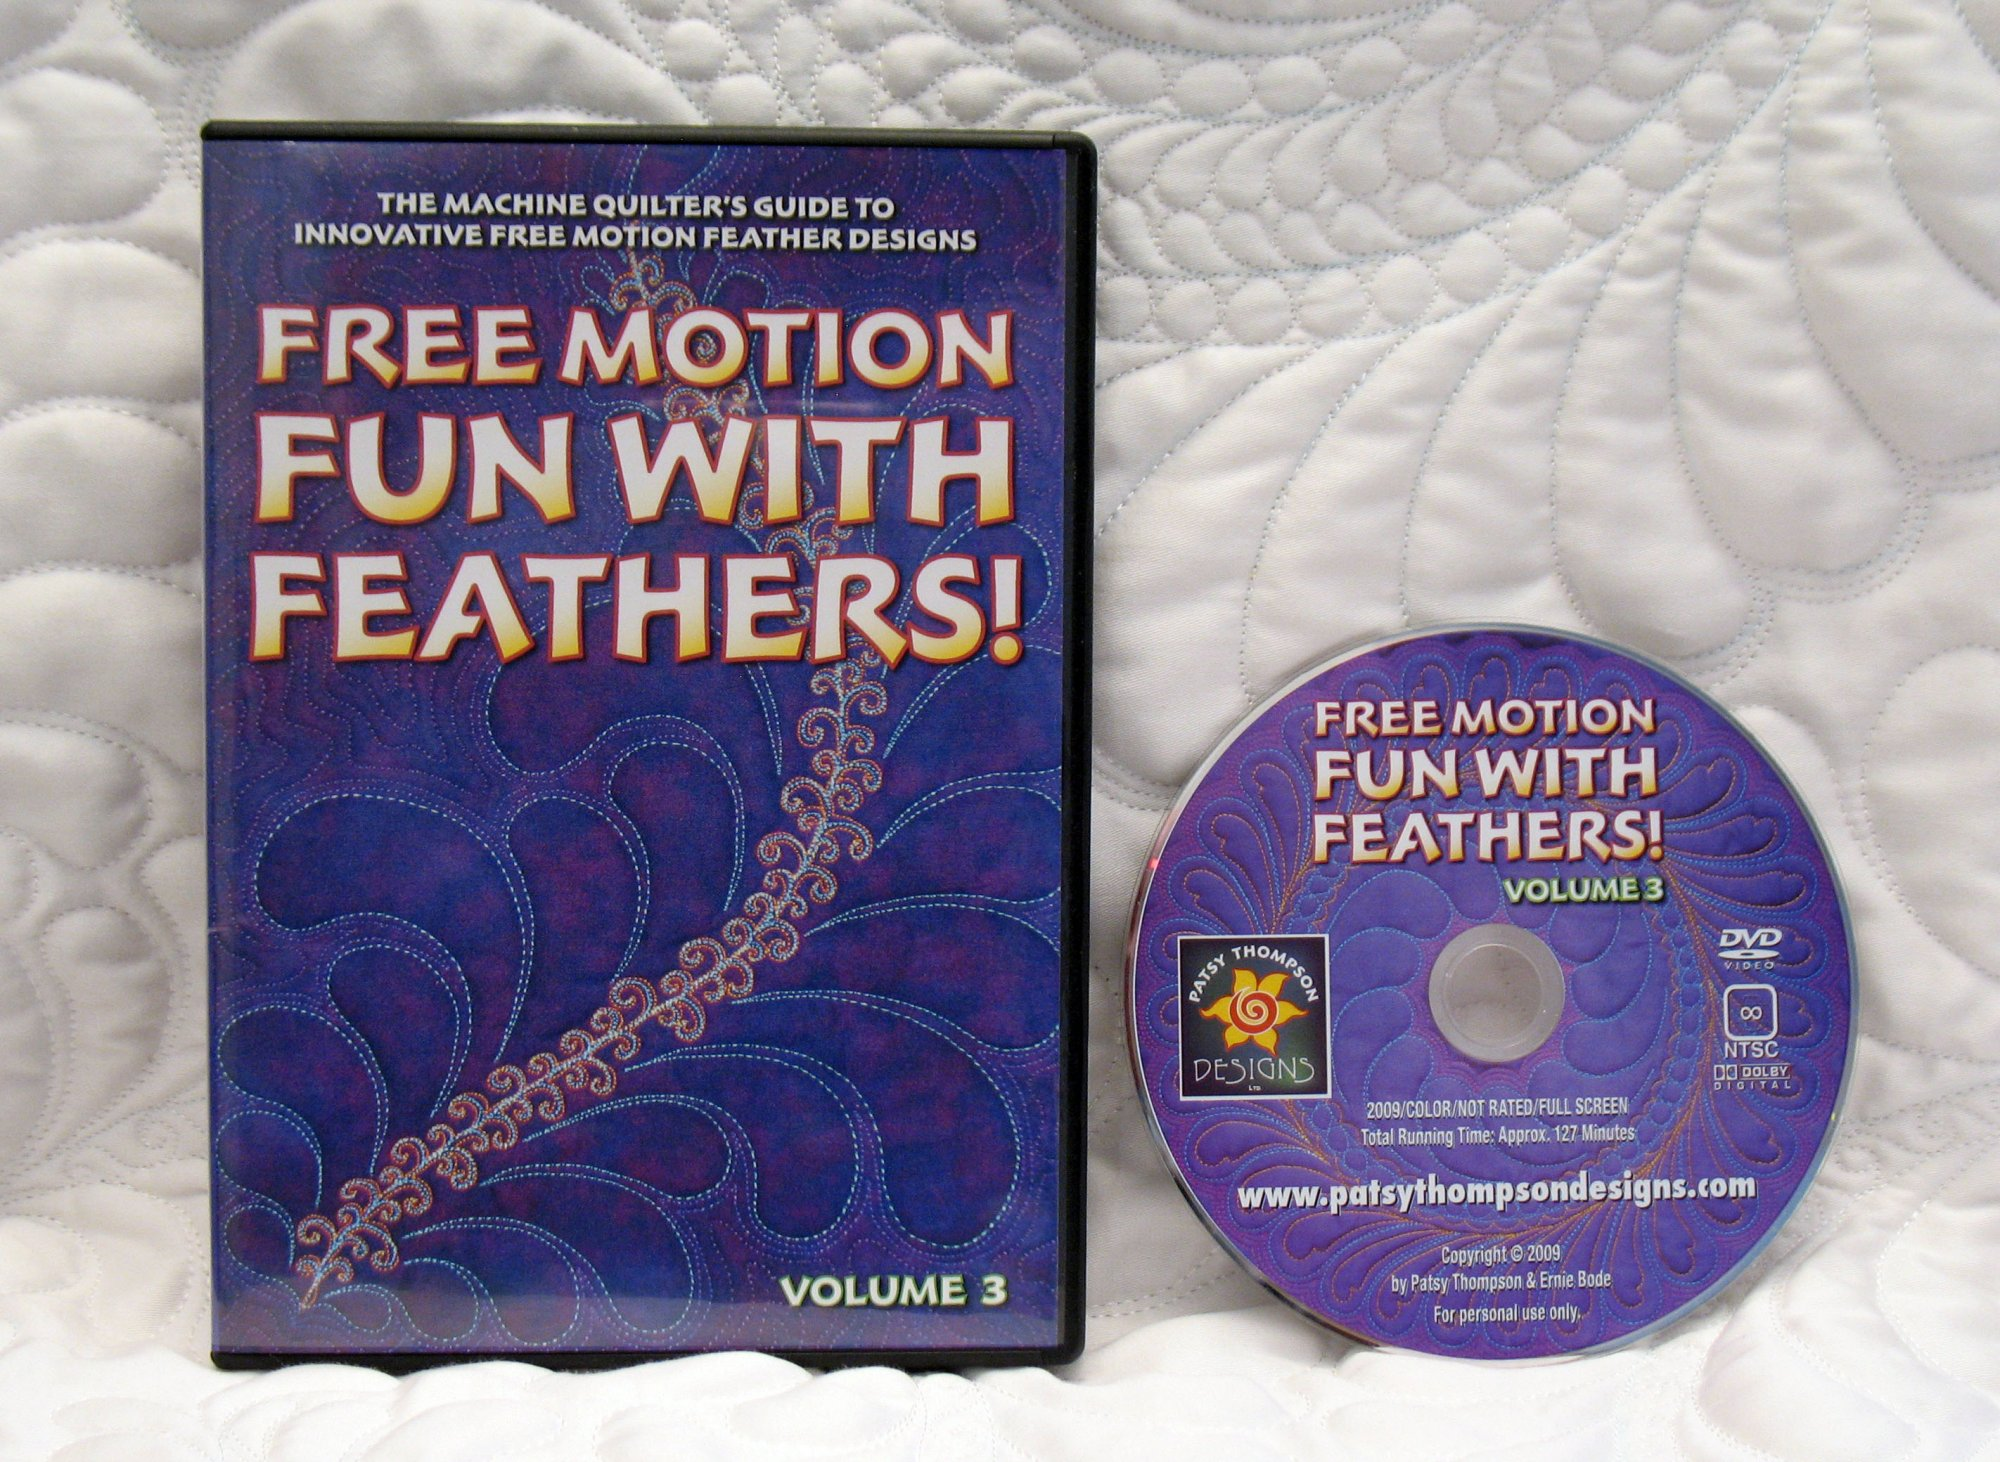 Free Motion Fun...With Feathers!  Volume 3